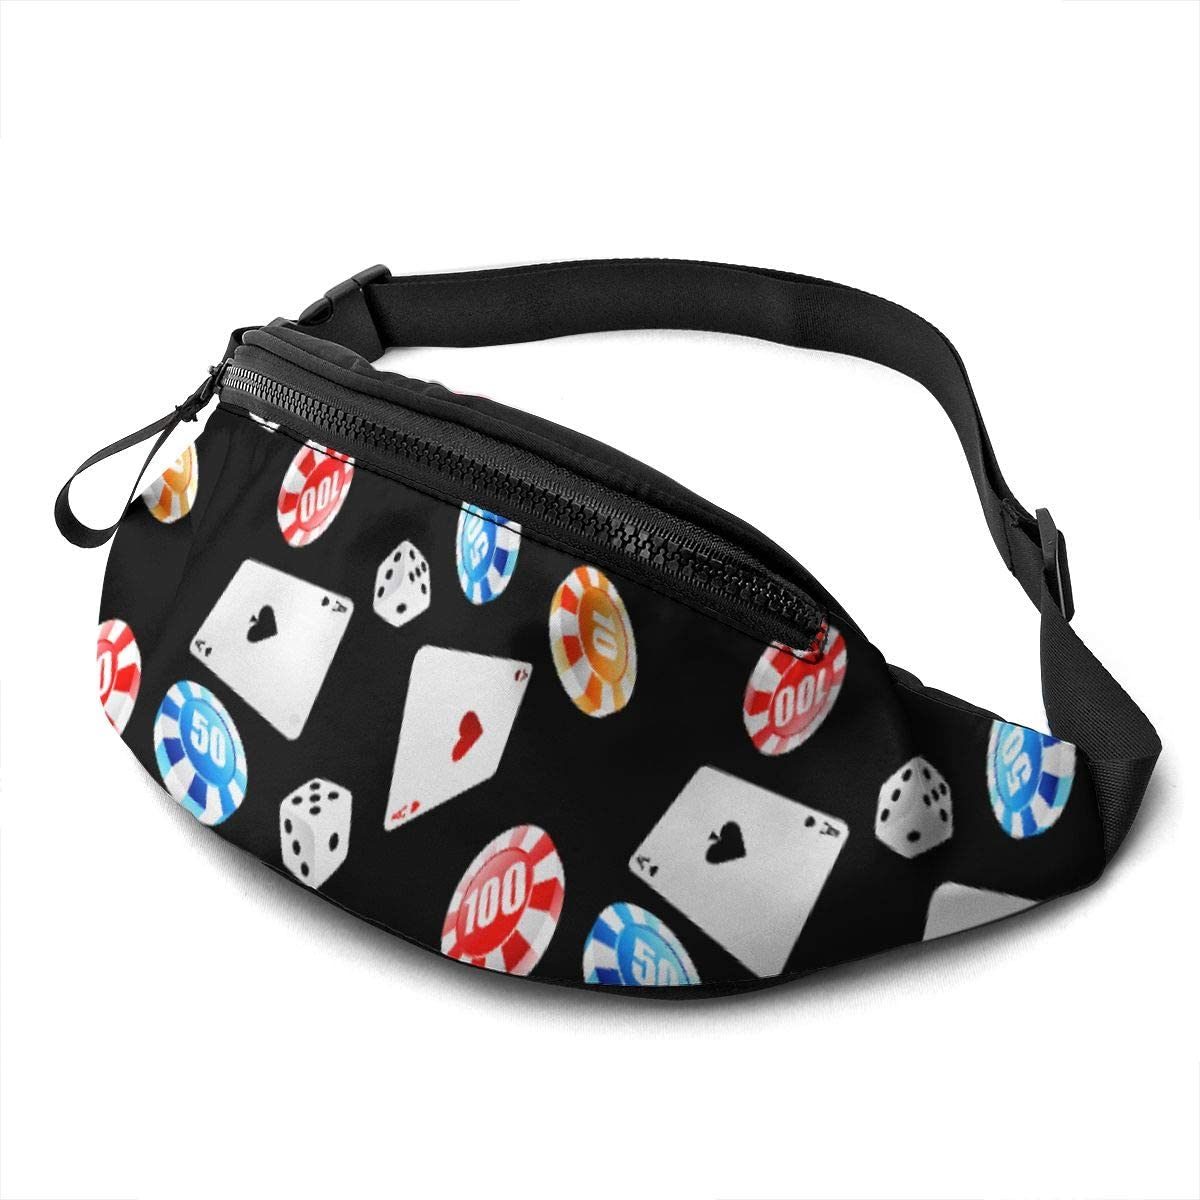 Poker And Dice Fanny Pack For Men Women Waist Pack Bag With Headphone Jack And Zipper Pockets Adjustable Straps